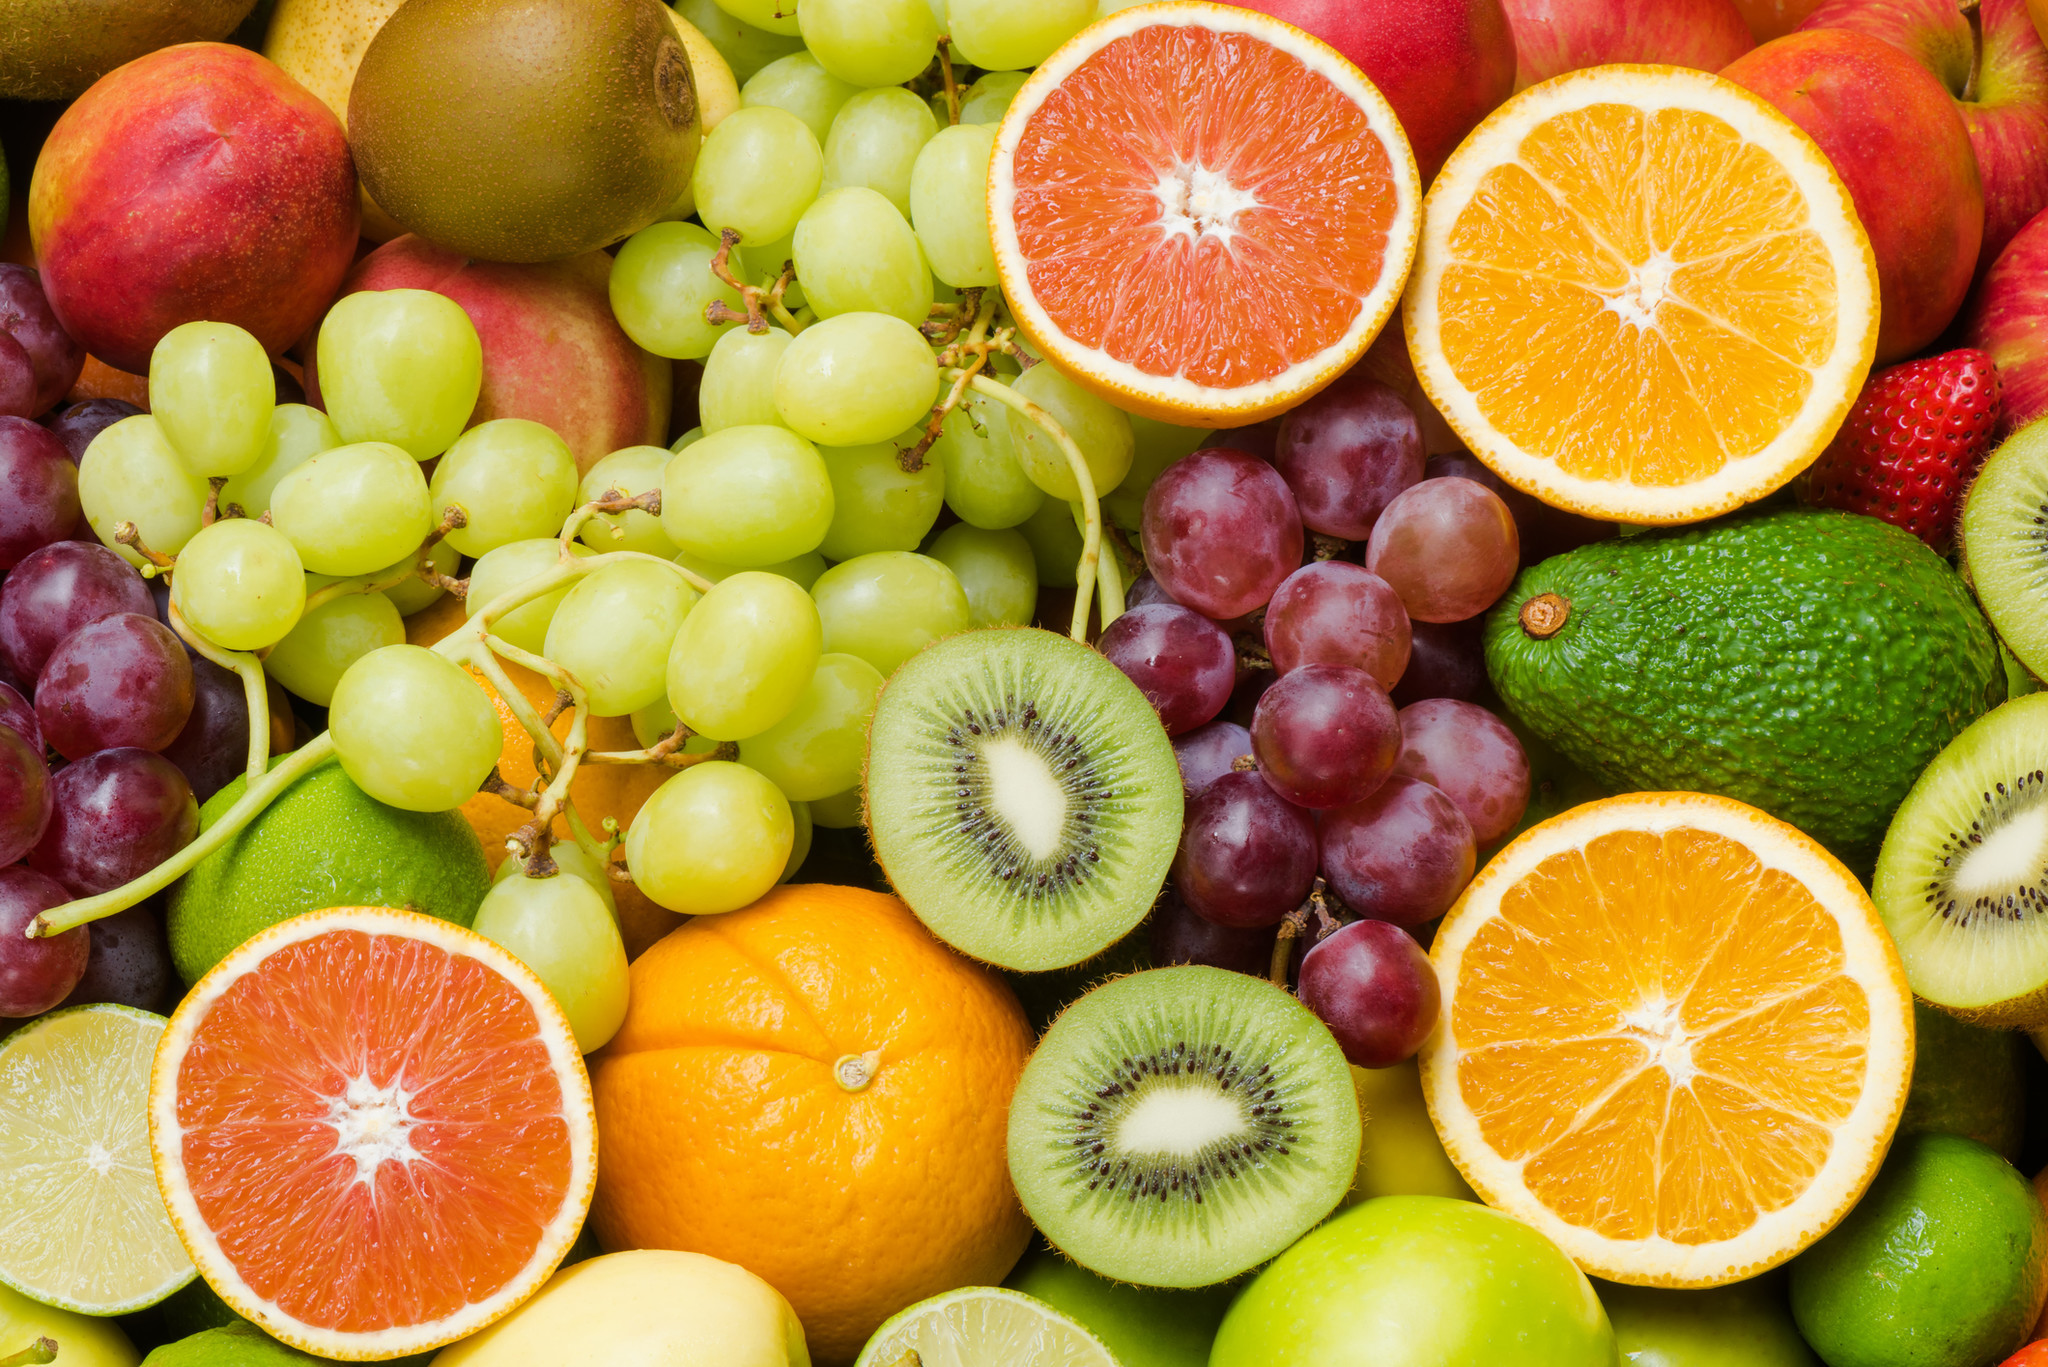 Which fruits contain the most sugar?